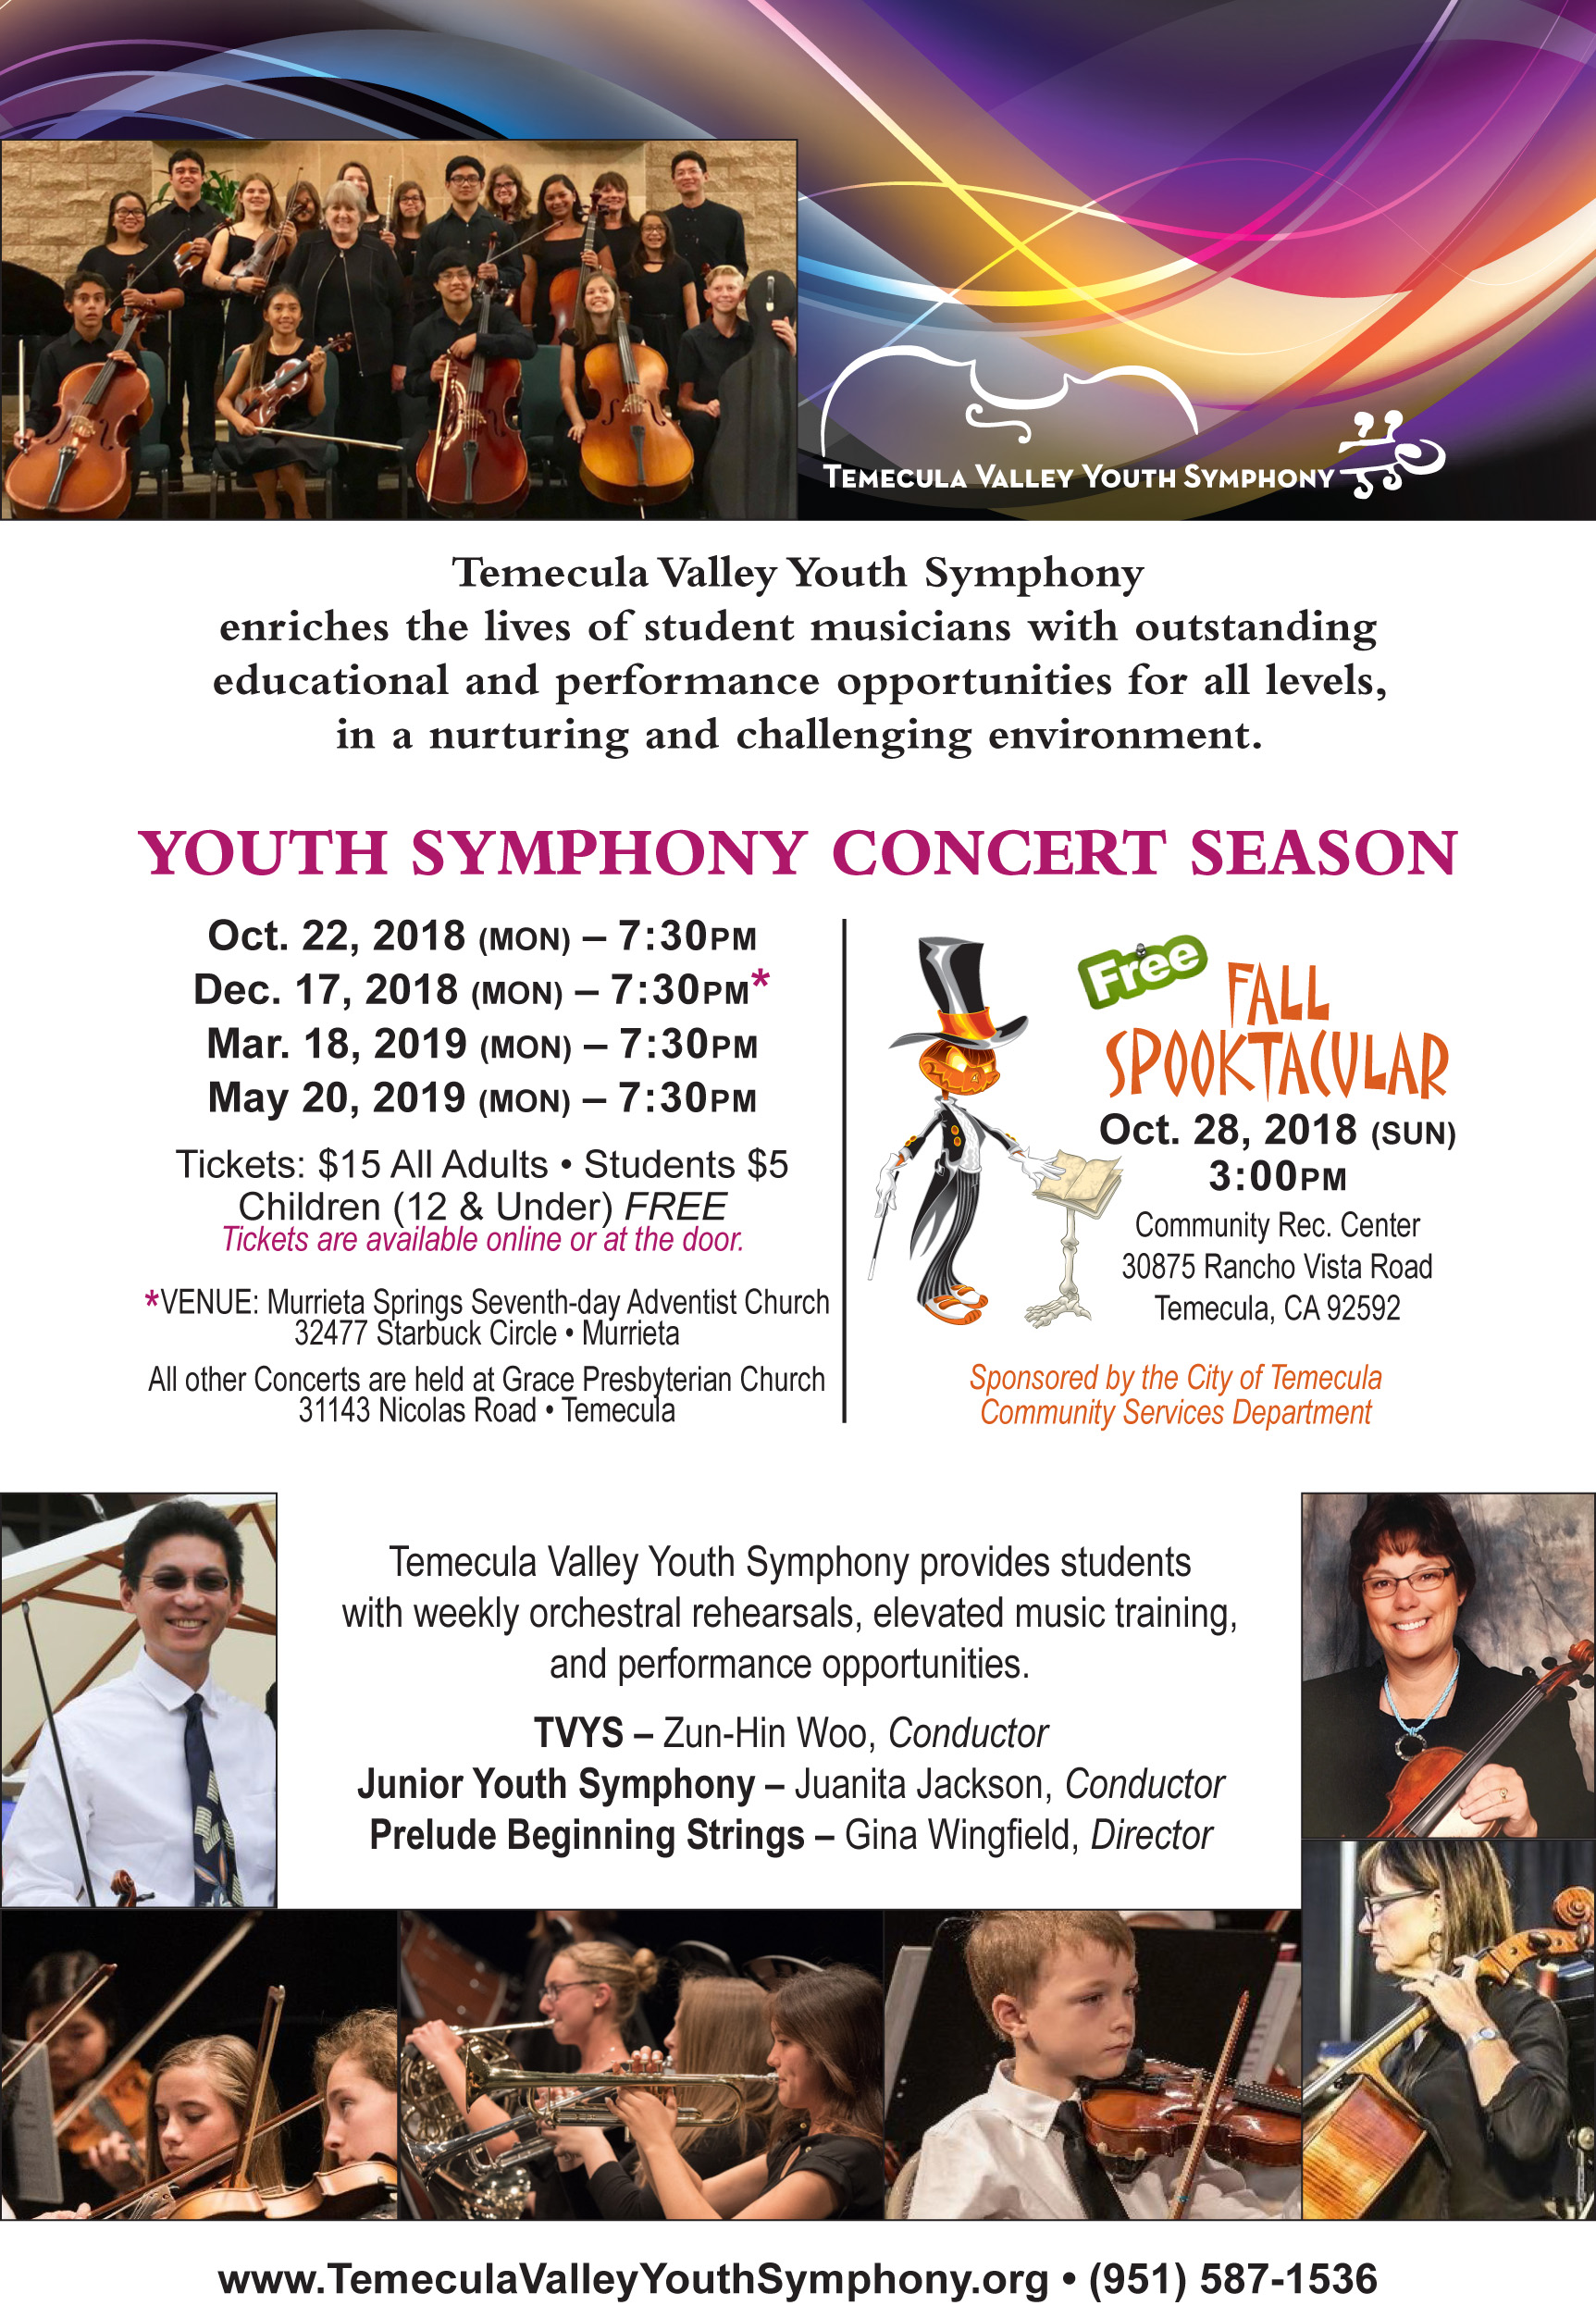 WINTER MAGIC - Youth Symphony Concert @ Murrieta Springs Seventh-day Adventist Church